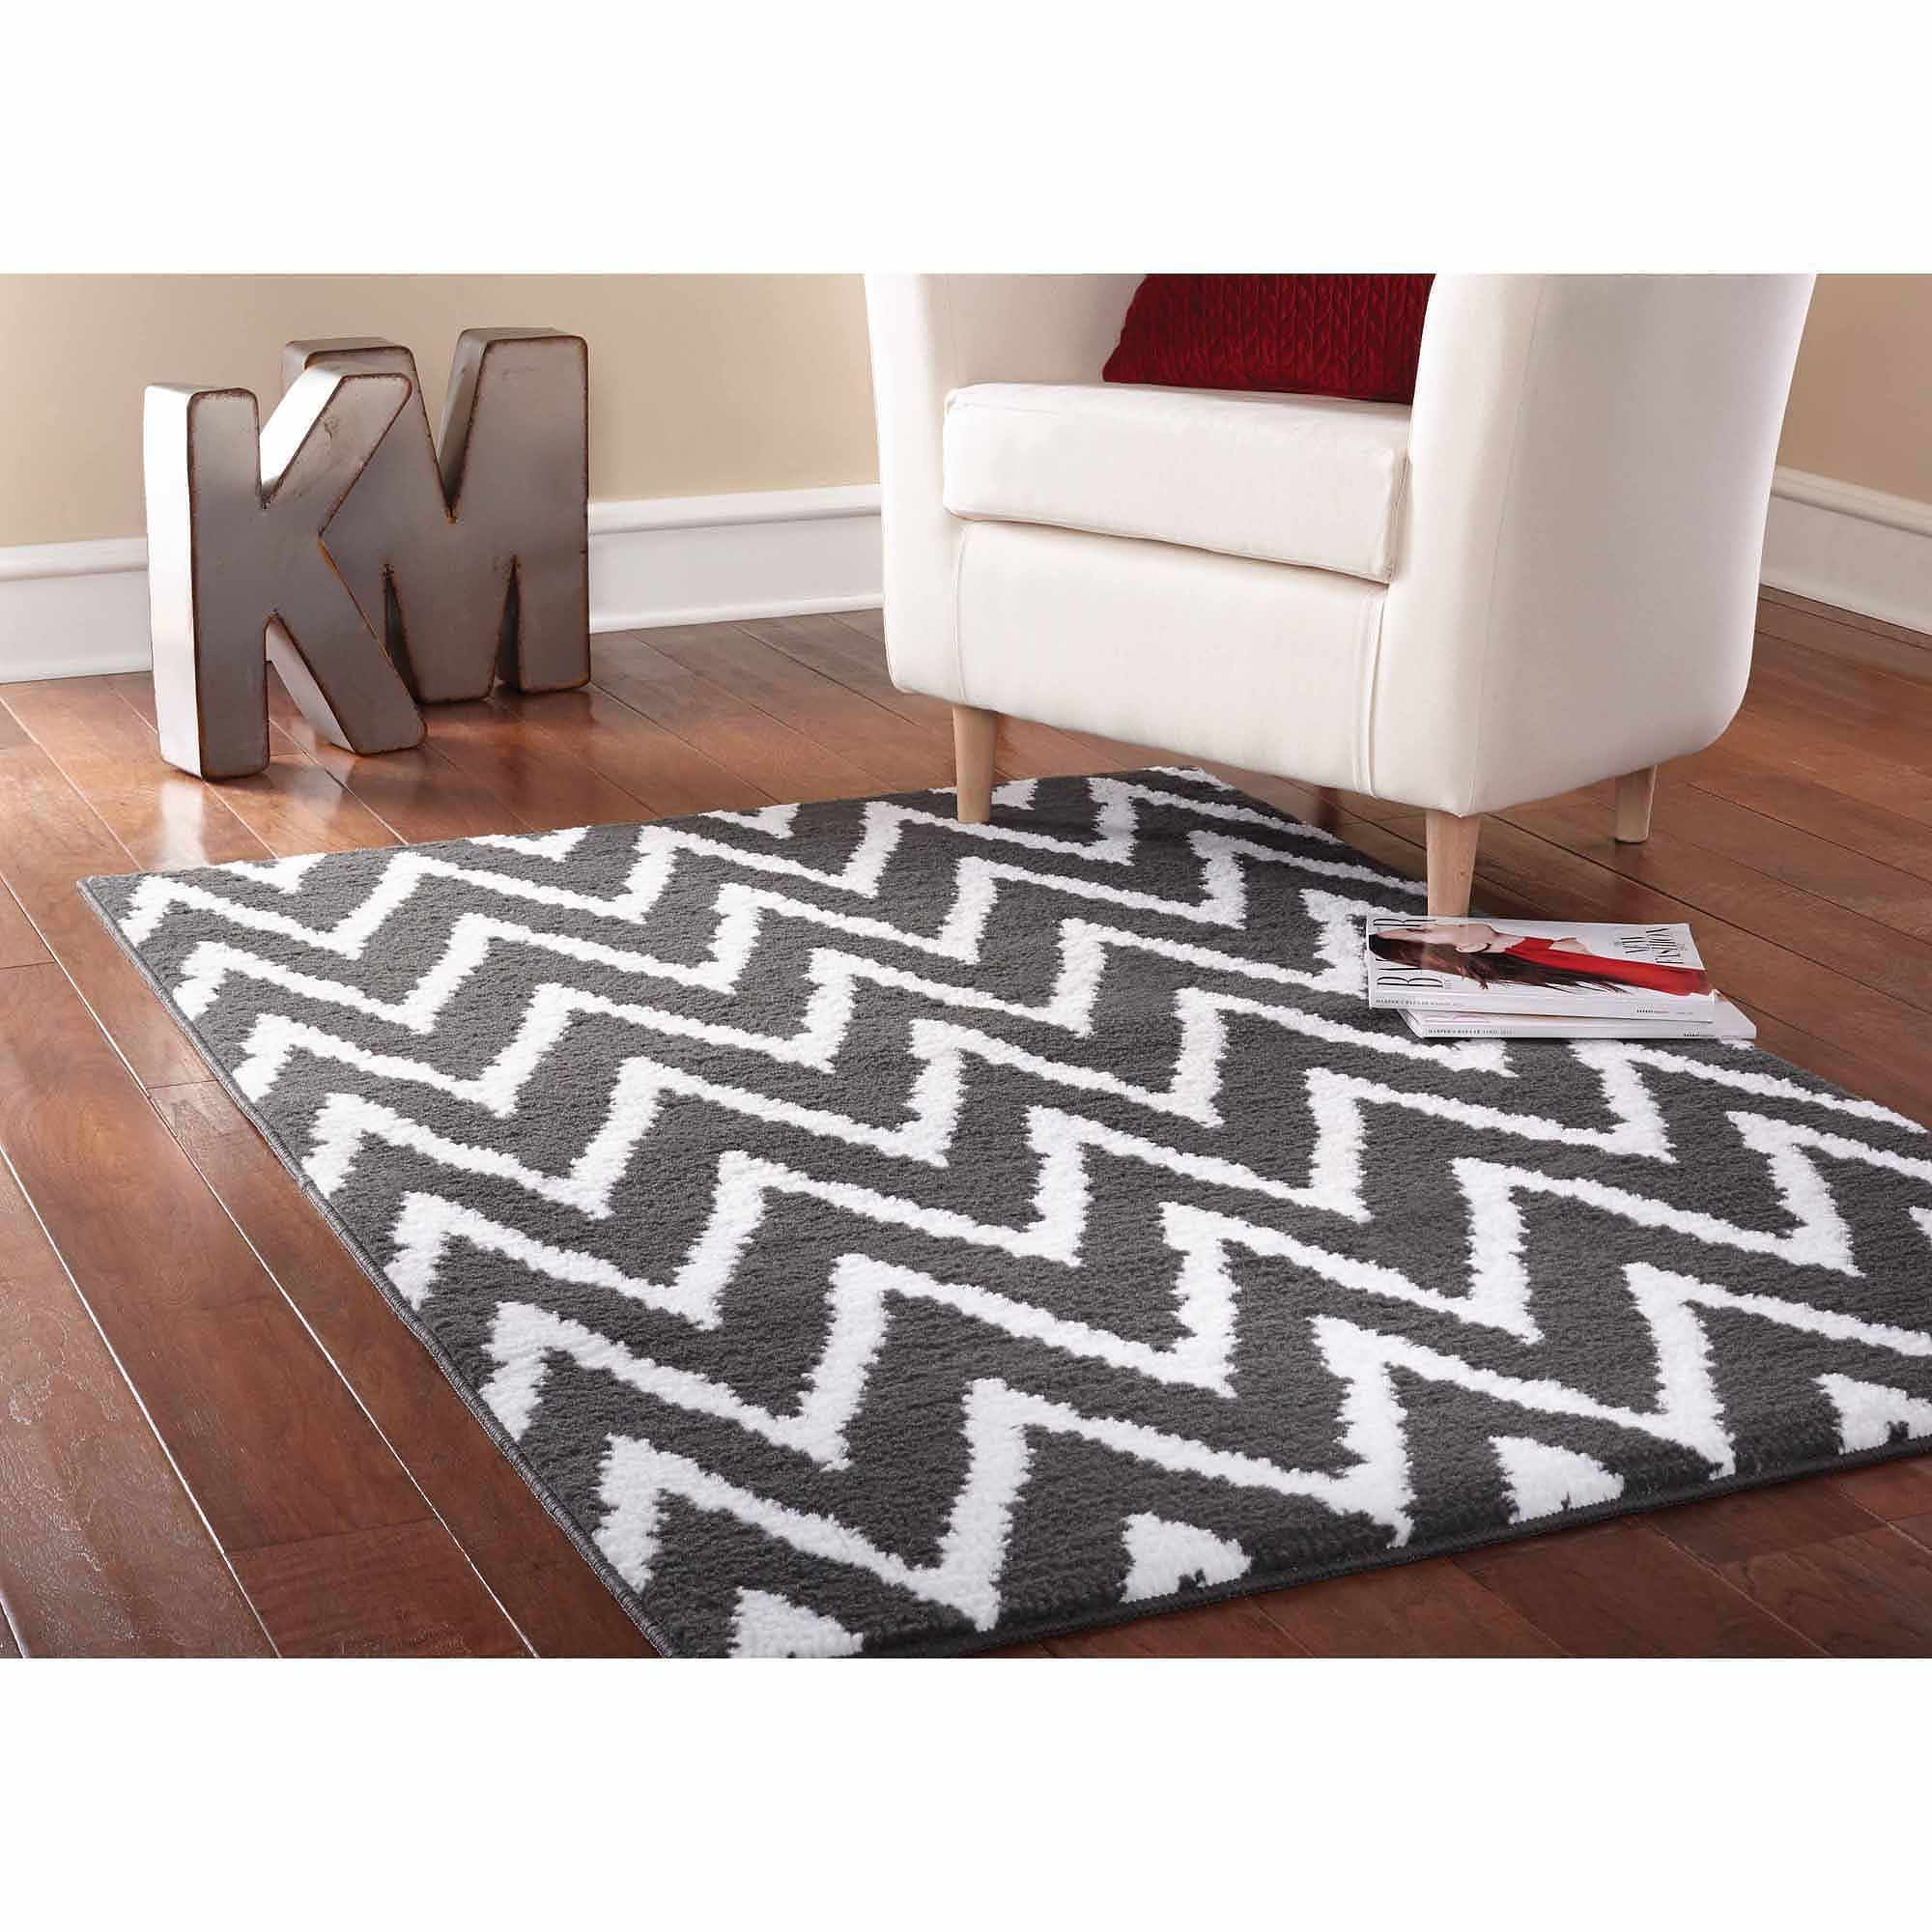 Rugs For Children's Rooms Gray White Carpet Rug Distressed Zig Zag Rugs For Kids